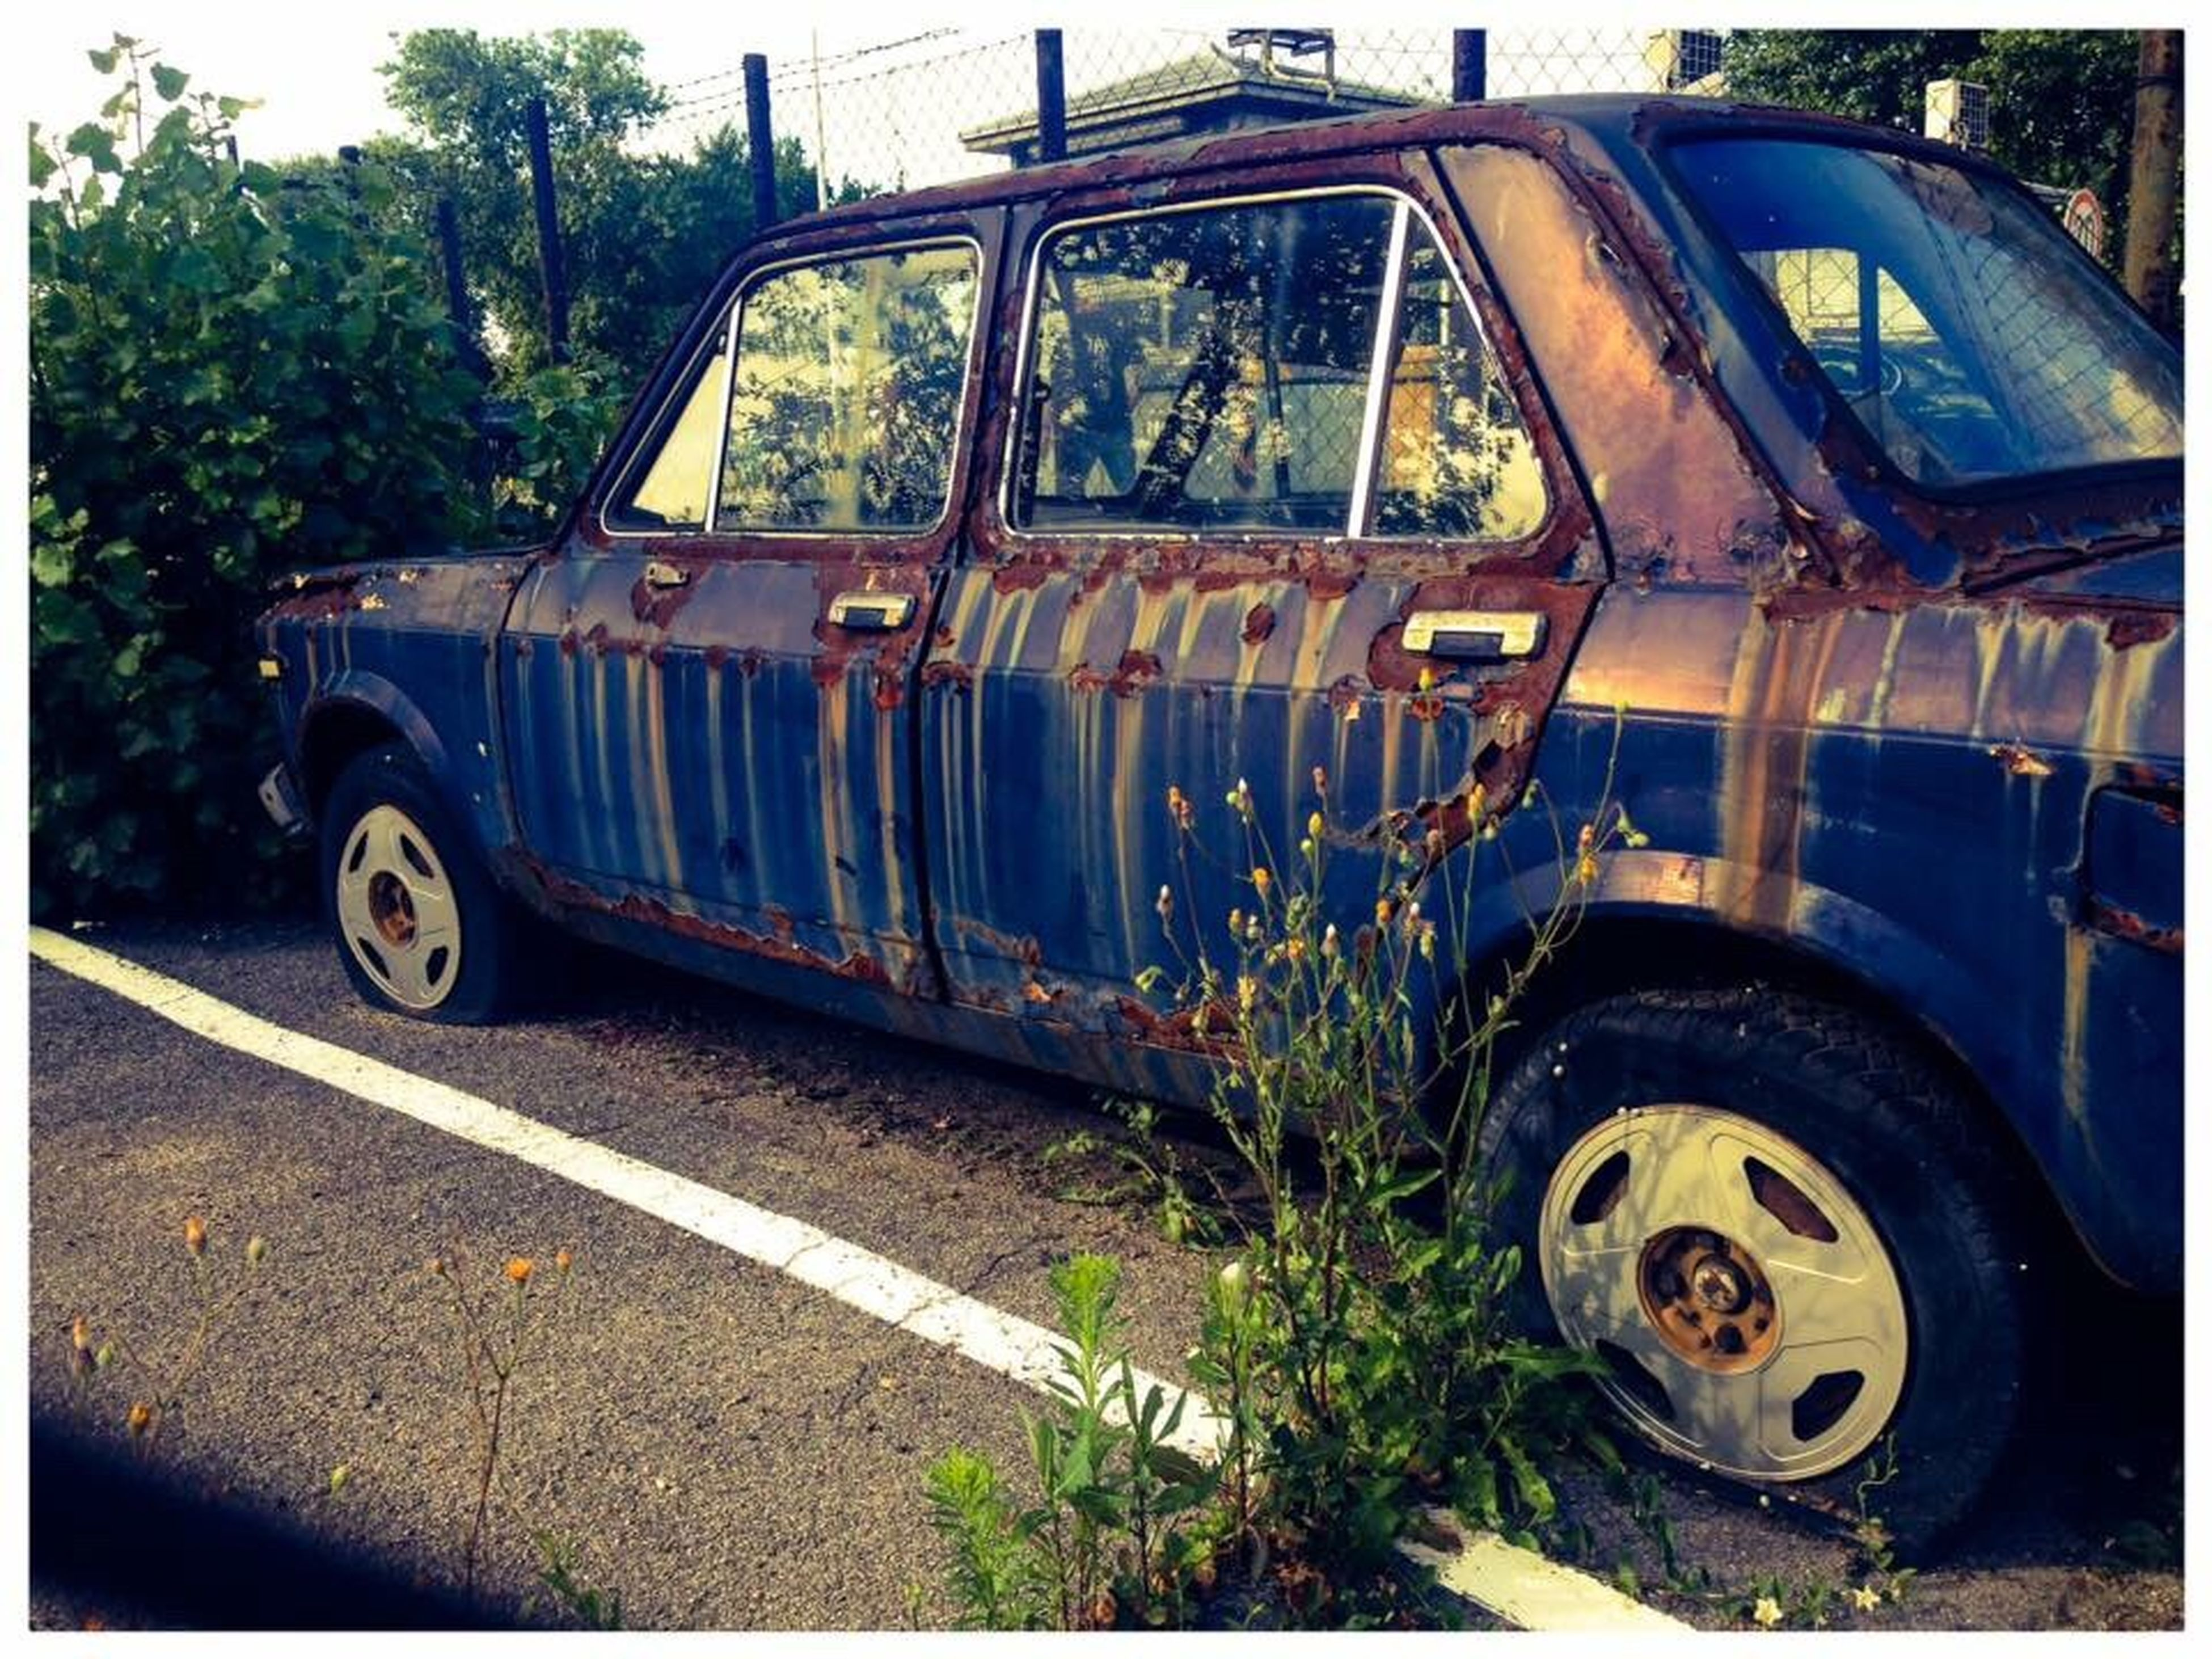 obsolete, abandoned, old-fashioned, damaged, antique, mode of transport, transportation, rusty, land vehicle, bad condition, no people, day, outdoors, sky